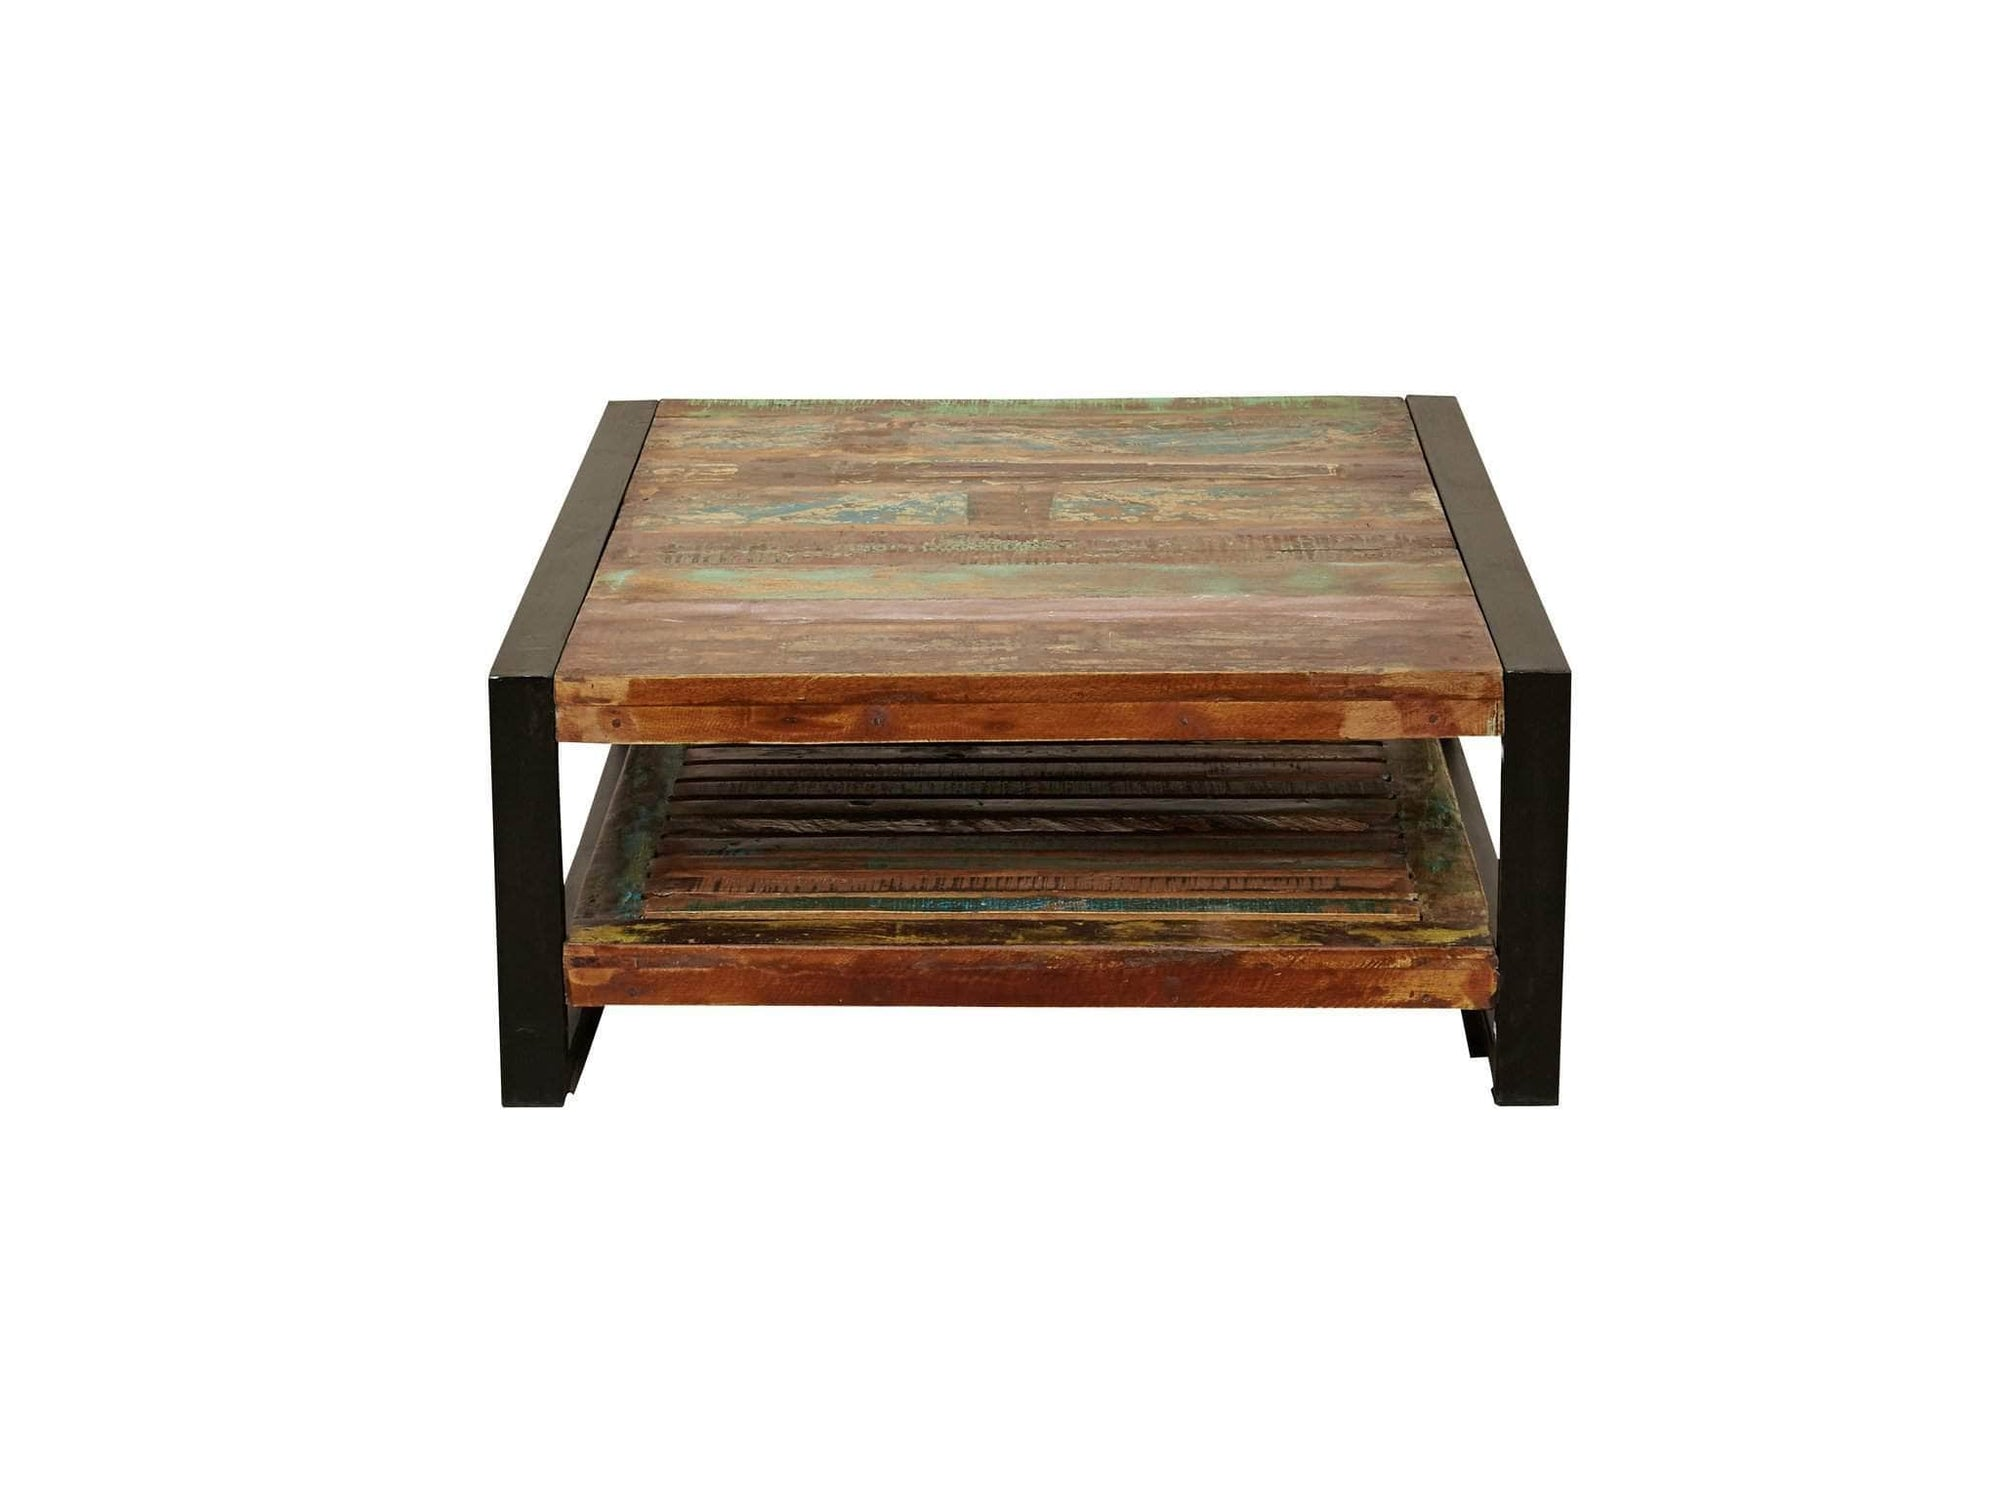 Square shaped reclaimed wood coffee table with under shelf